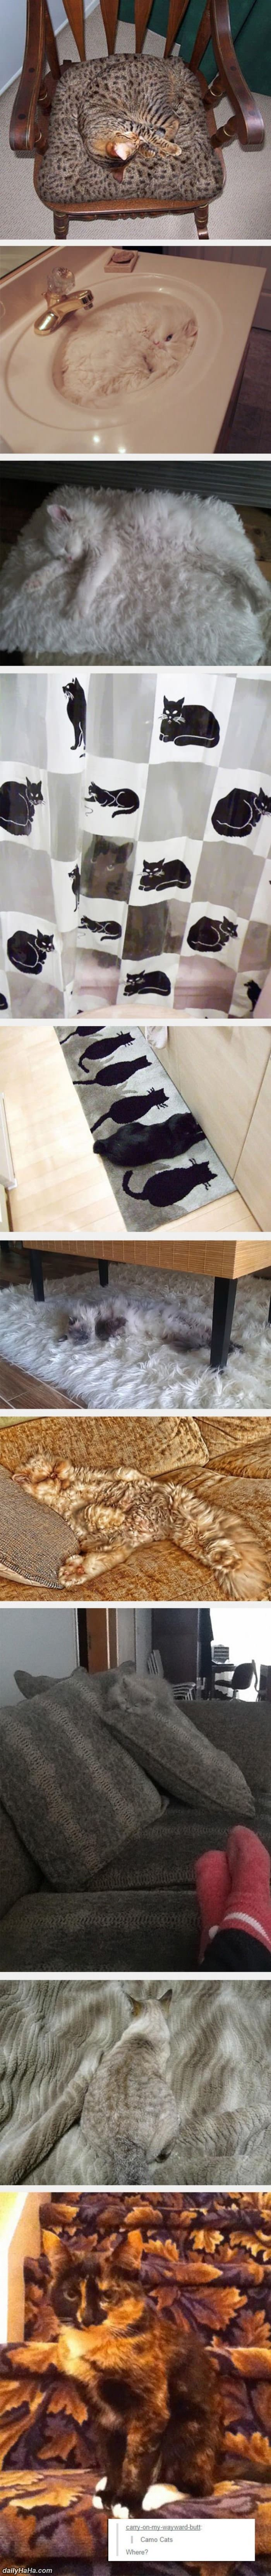 Camo Cats Justviralpics Com Cute Funny Animals Cute Animals Crazy Cats